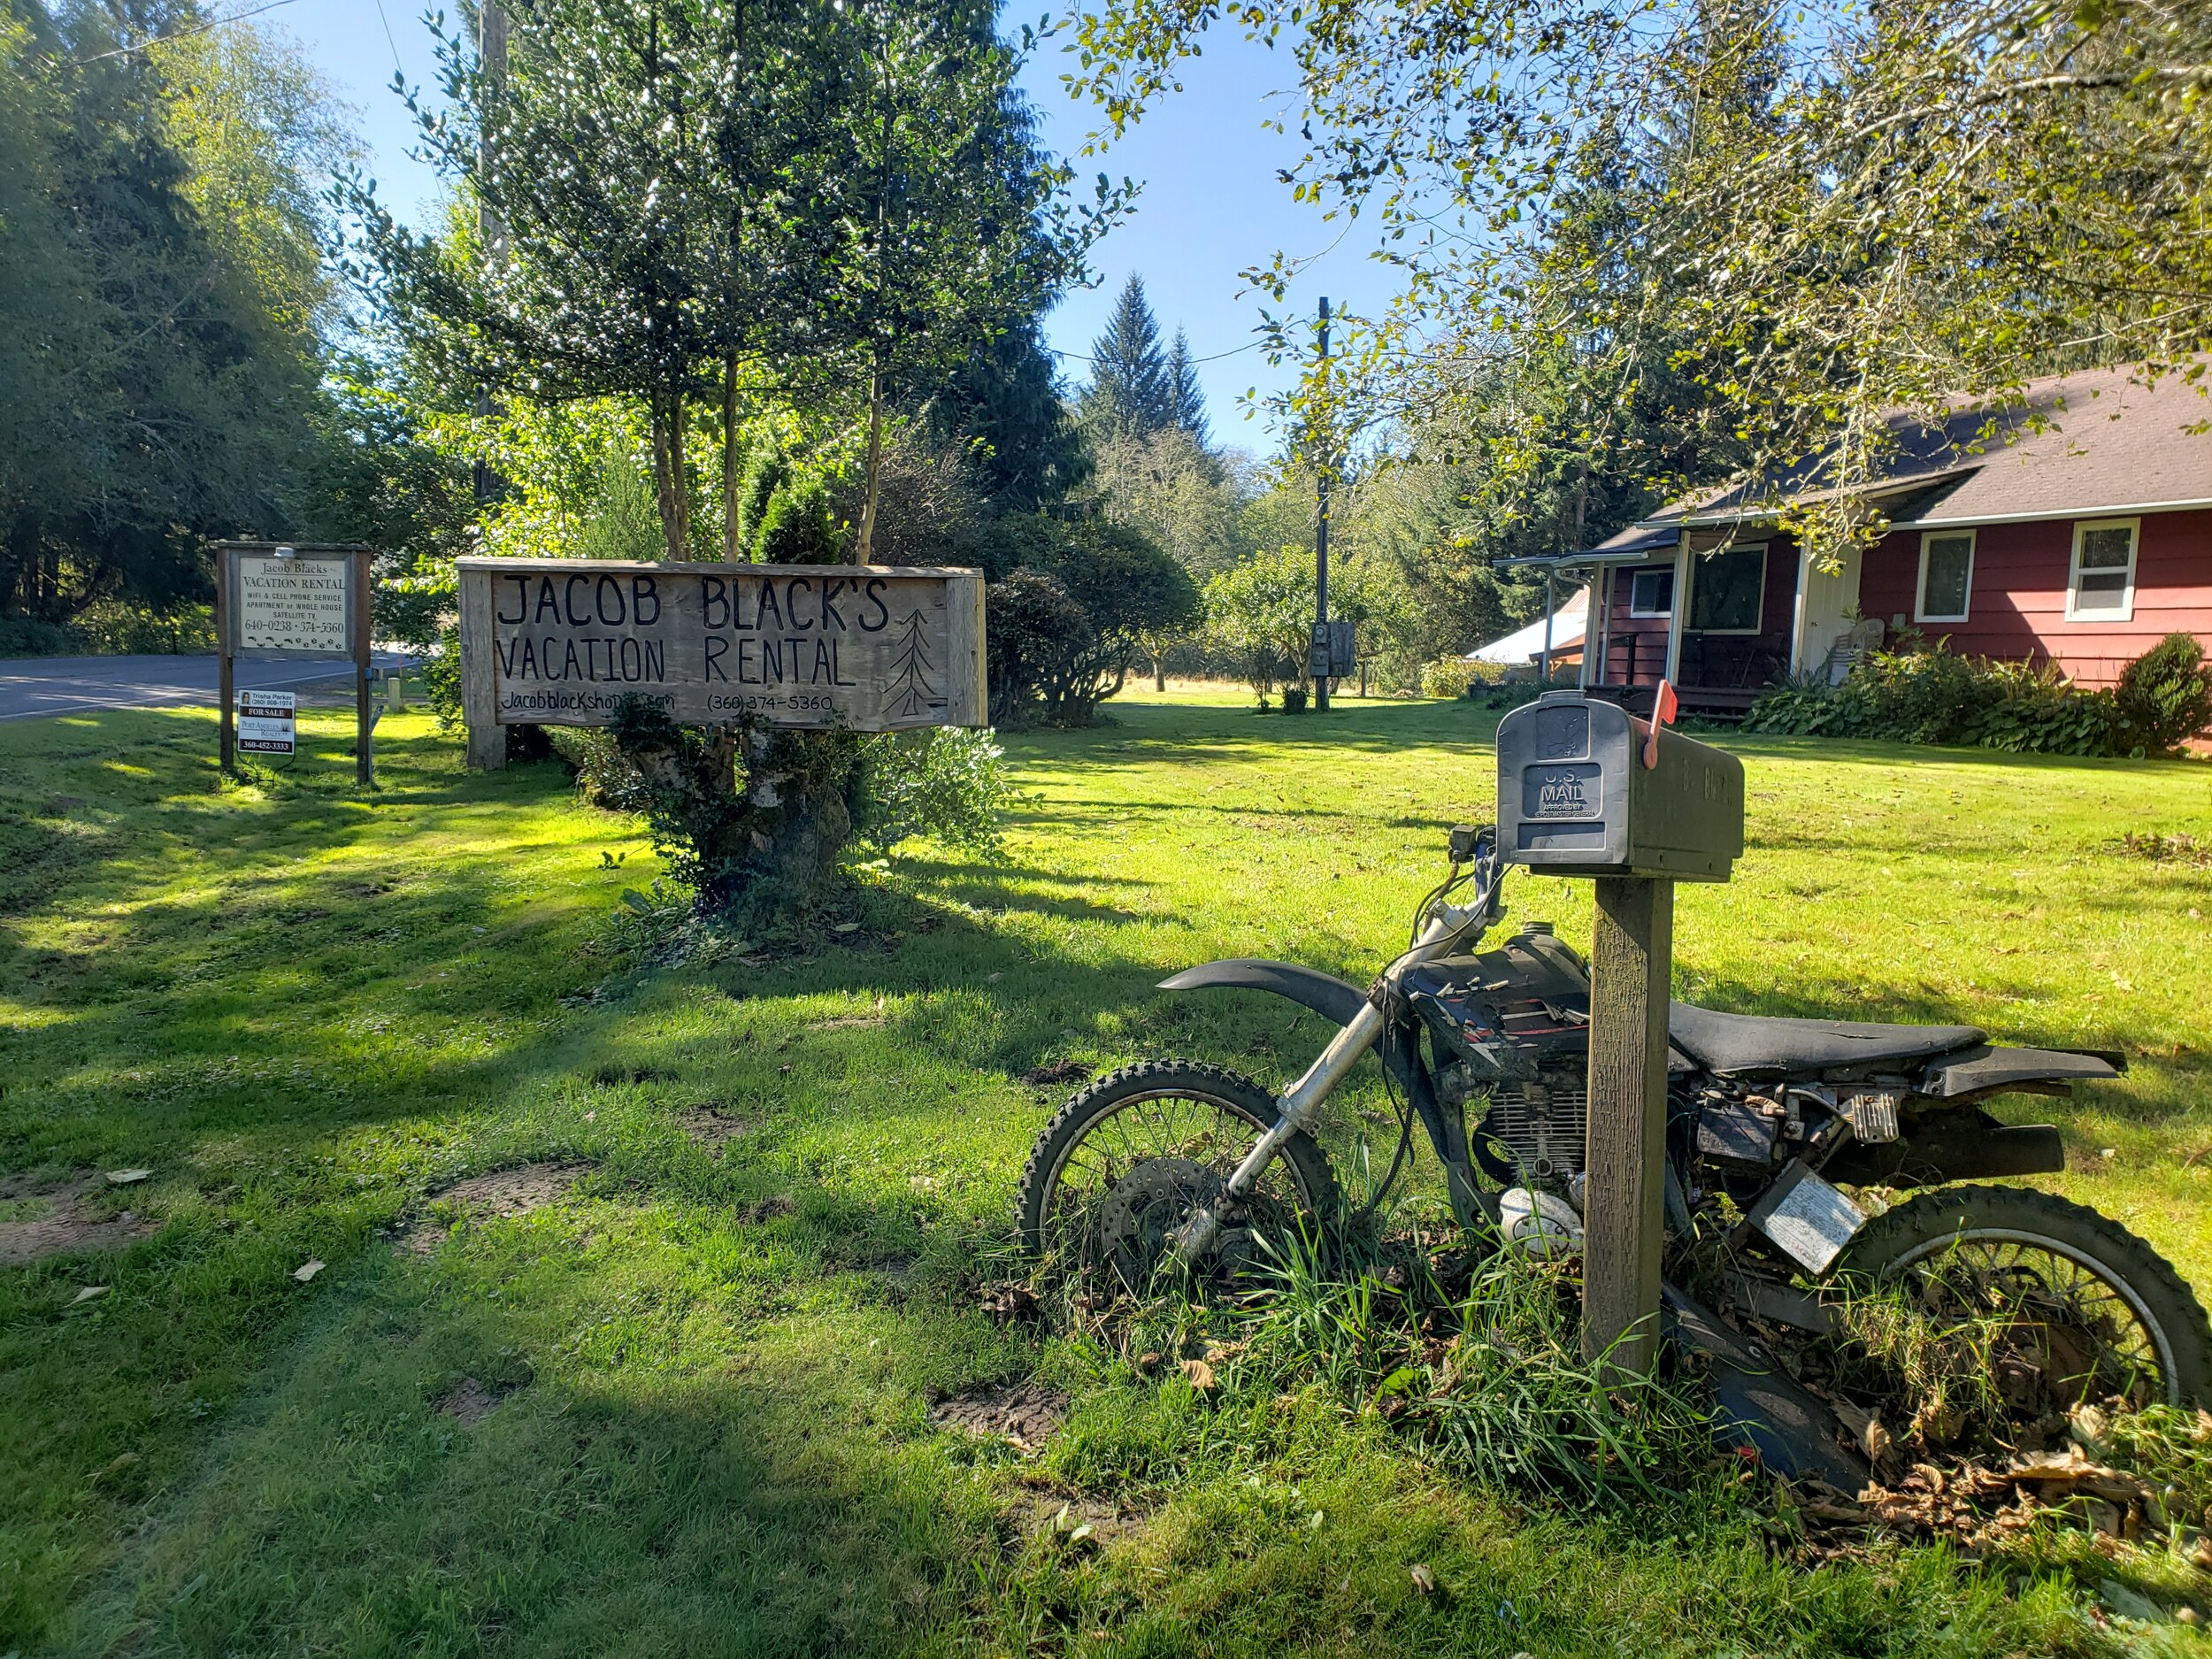 2020 Twilight Tour In Forks Washington Travel Guide The Sweet Savory Life